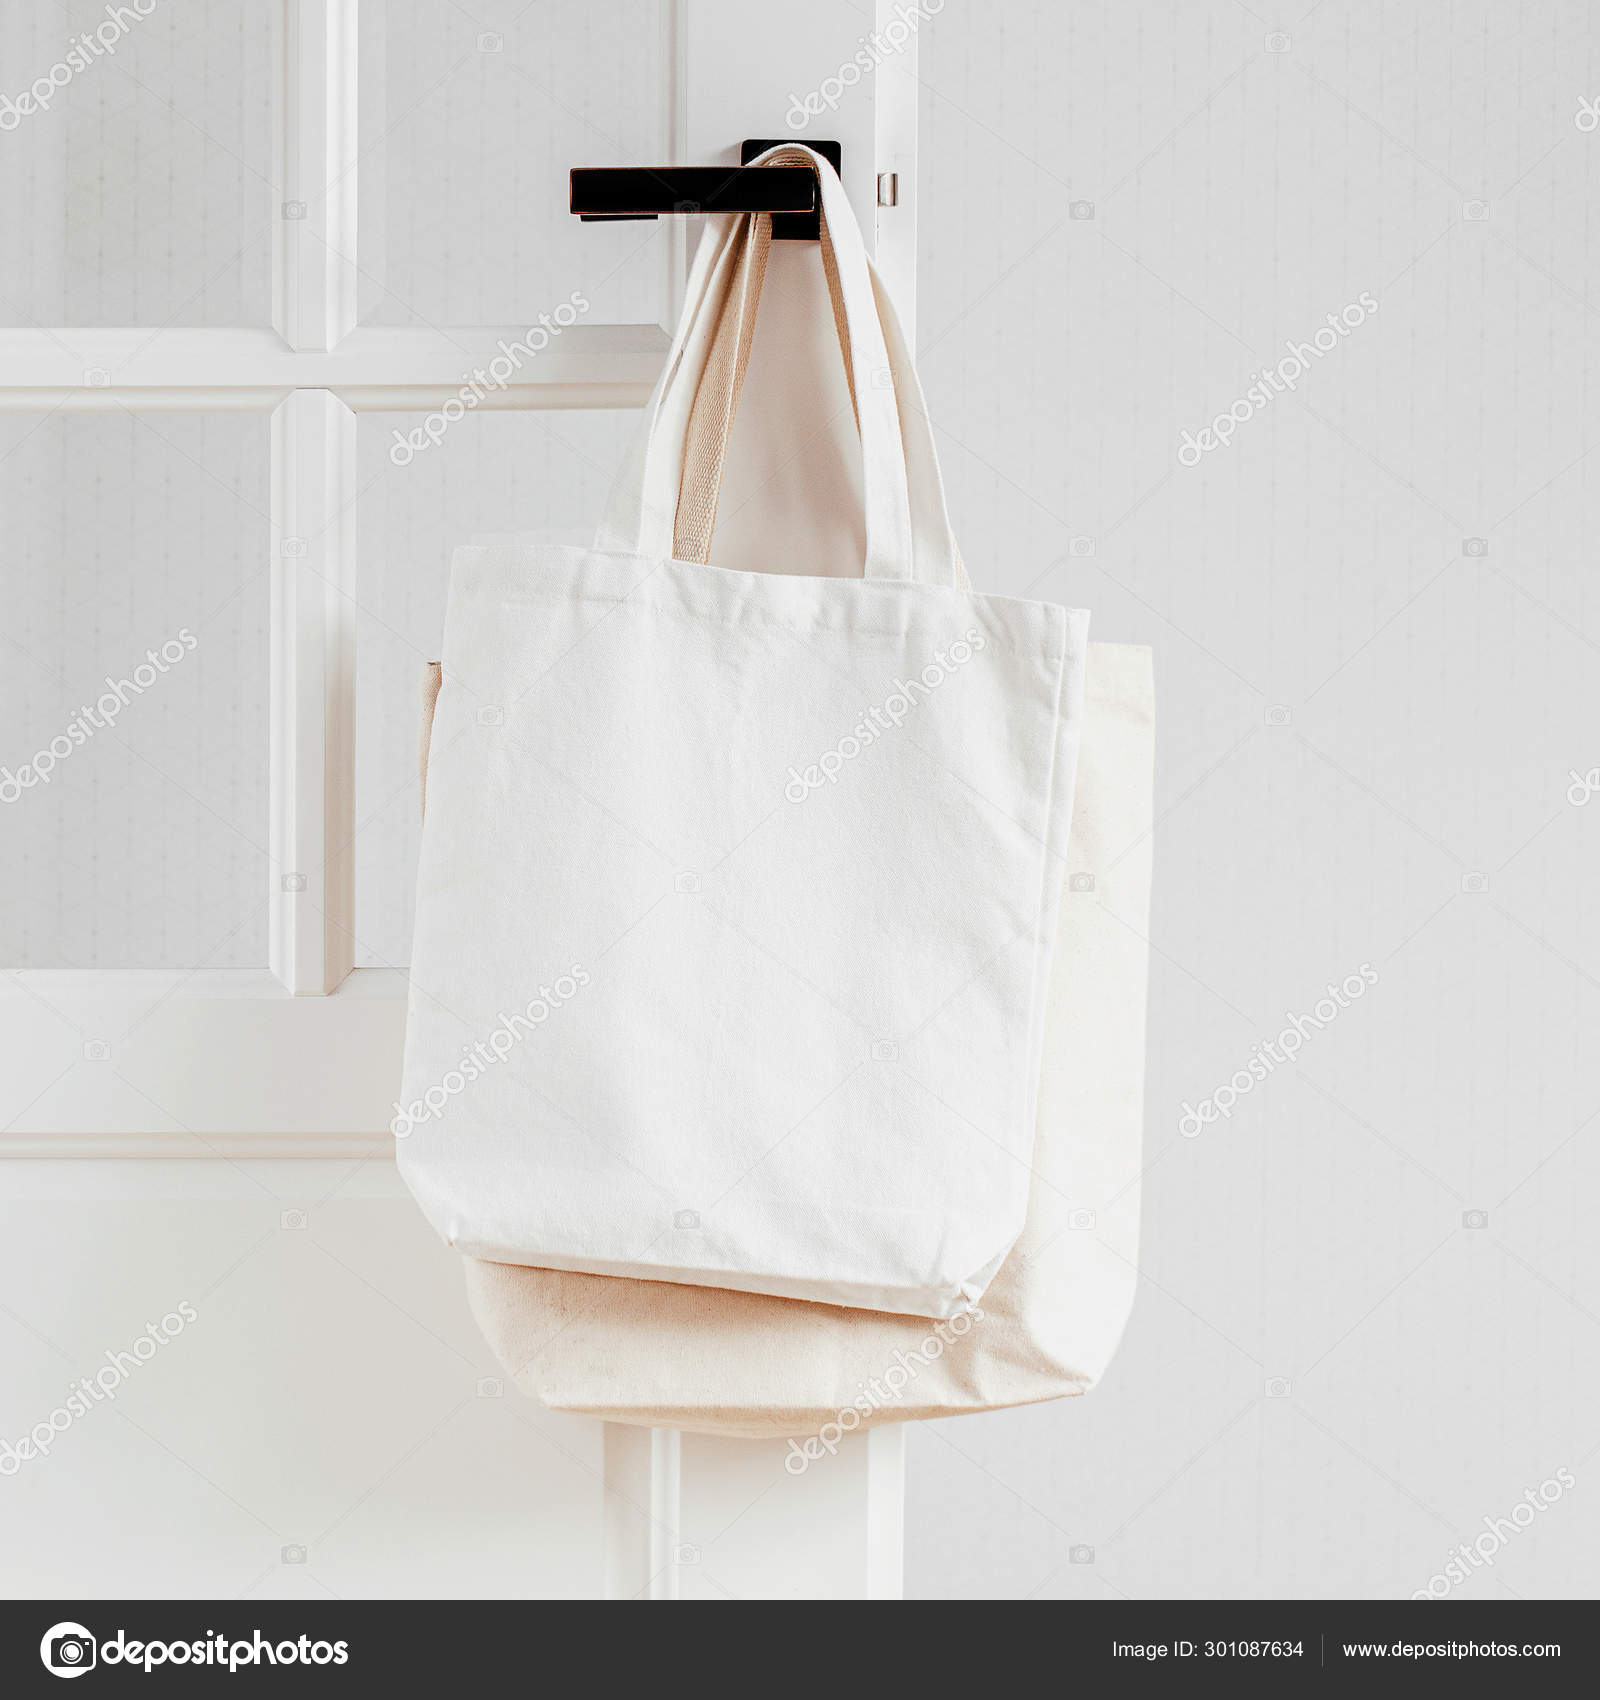 So work on your shopping bag designs with the free shopping bag mockup psd files which can be downloaded and edited like. White Eco Bag Mockup Blank Shopping Sack Copy Space Canvas Stock Photo By C Igishevamaria 301087634